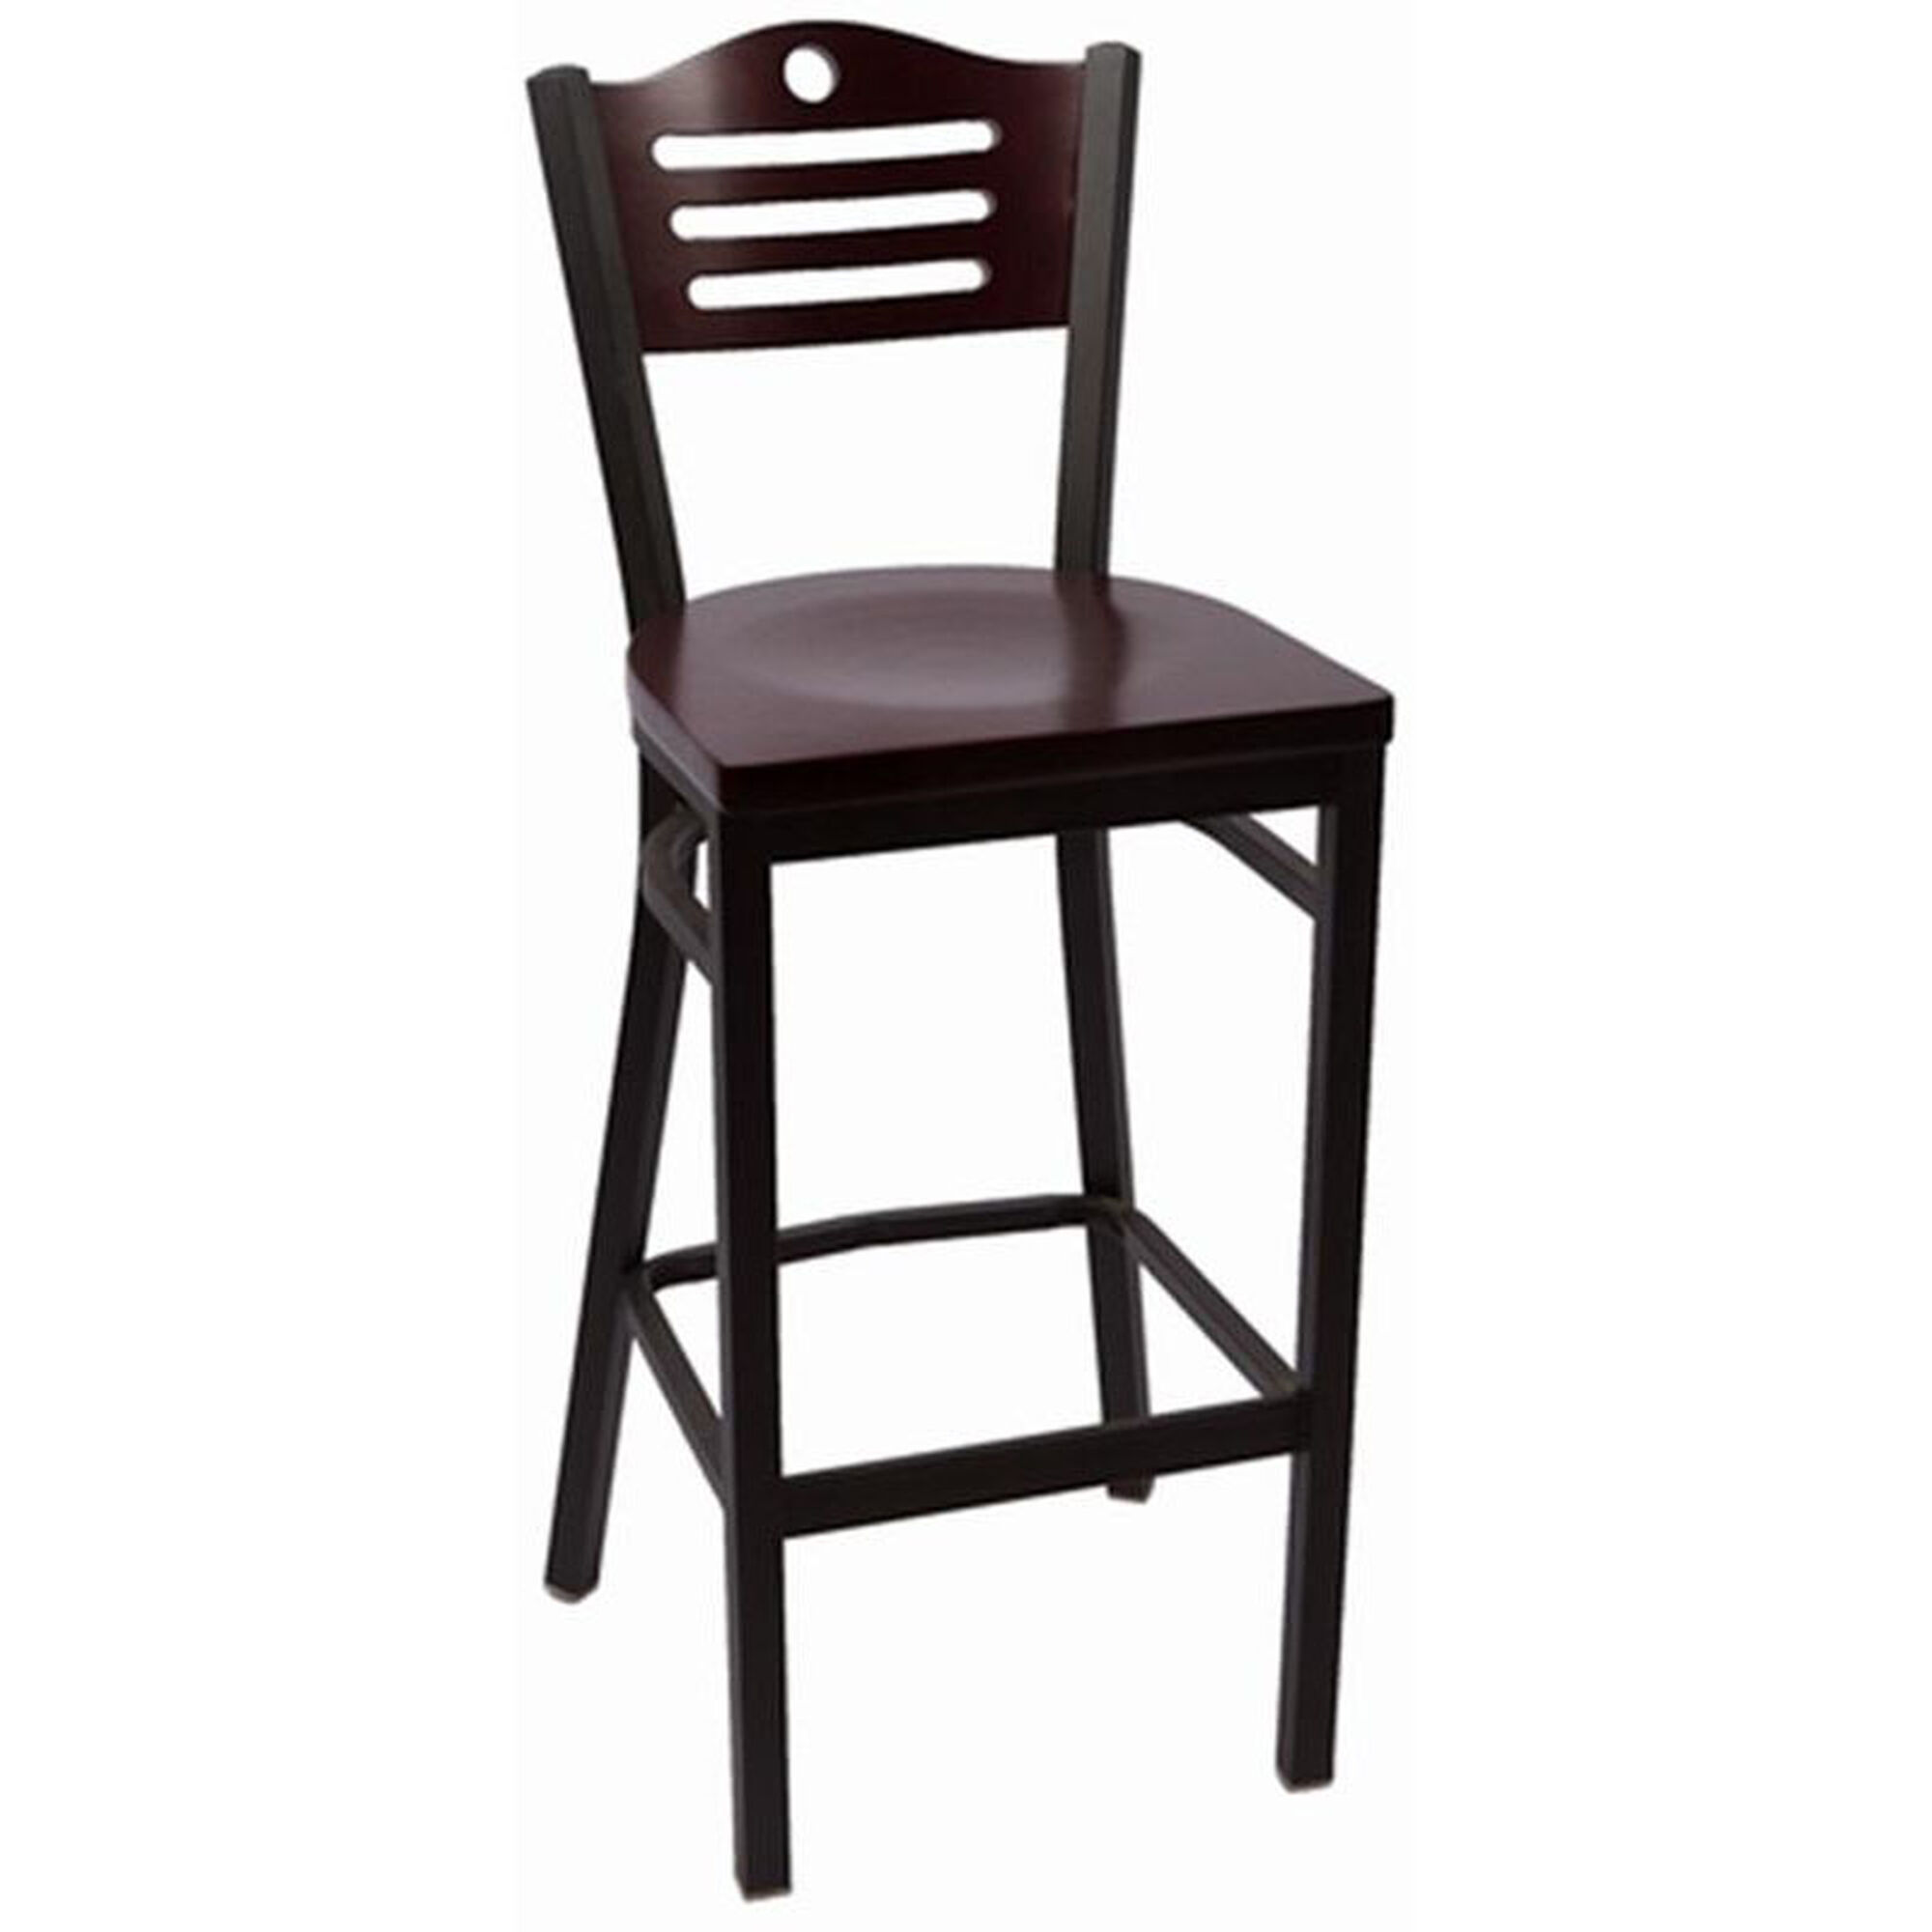 Our eagle series wood back armless barstool with steel